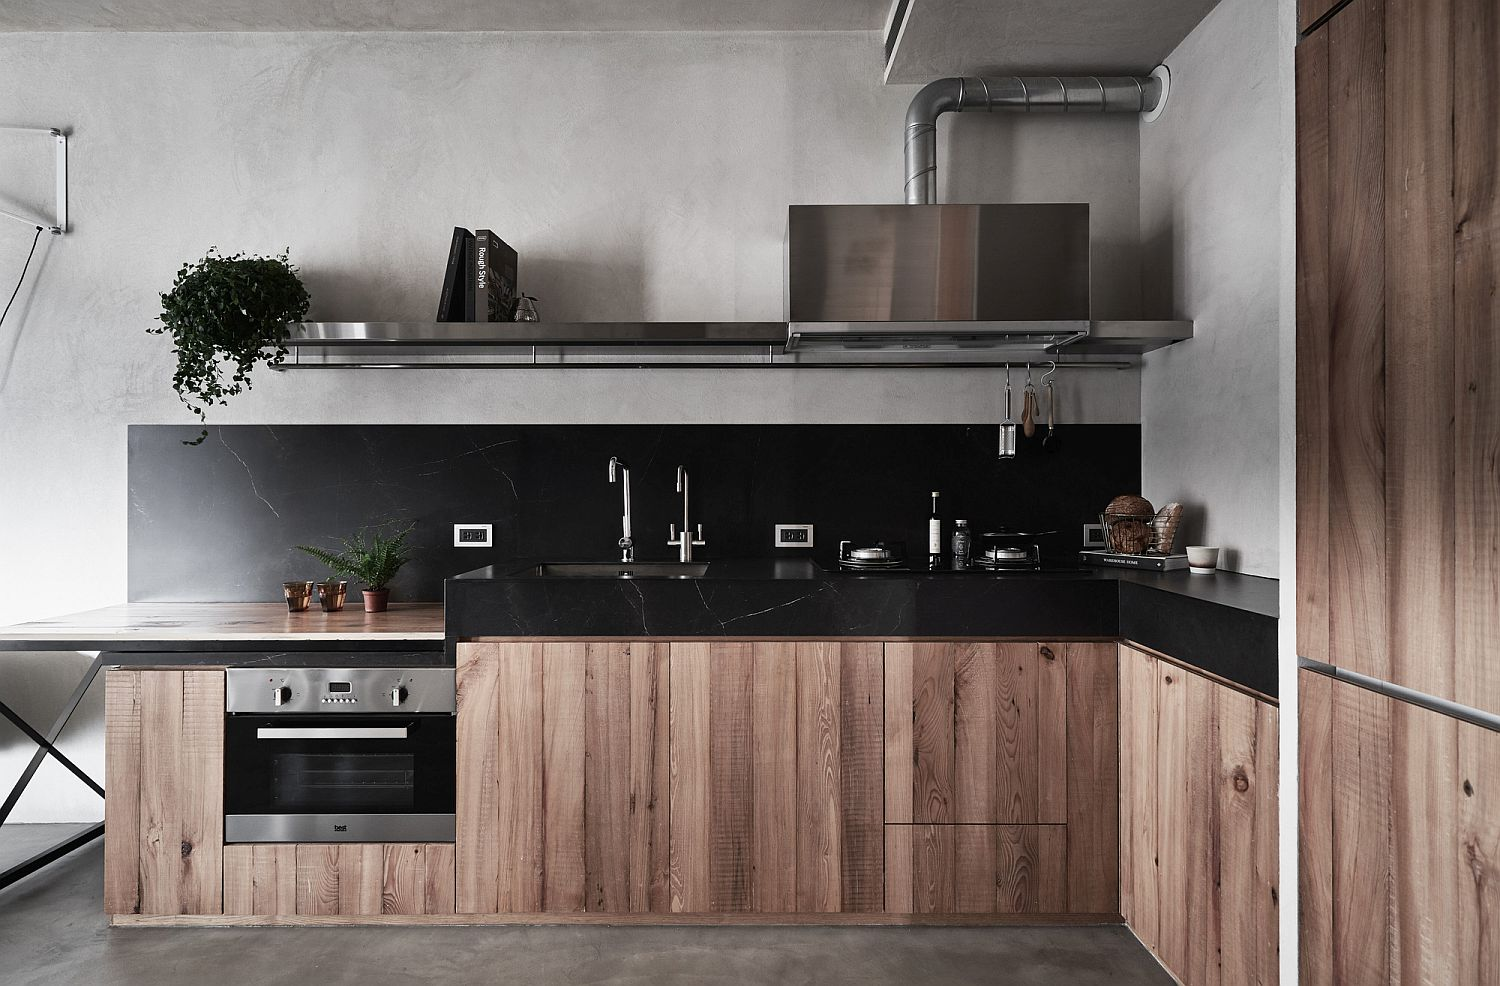 L-shaped kitchen in the corner with dark countertops and wooden cabinets